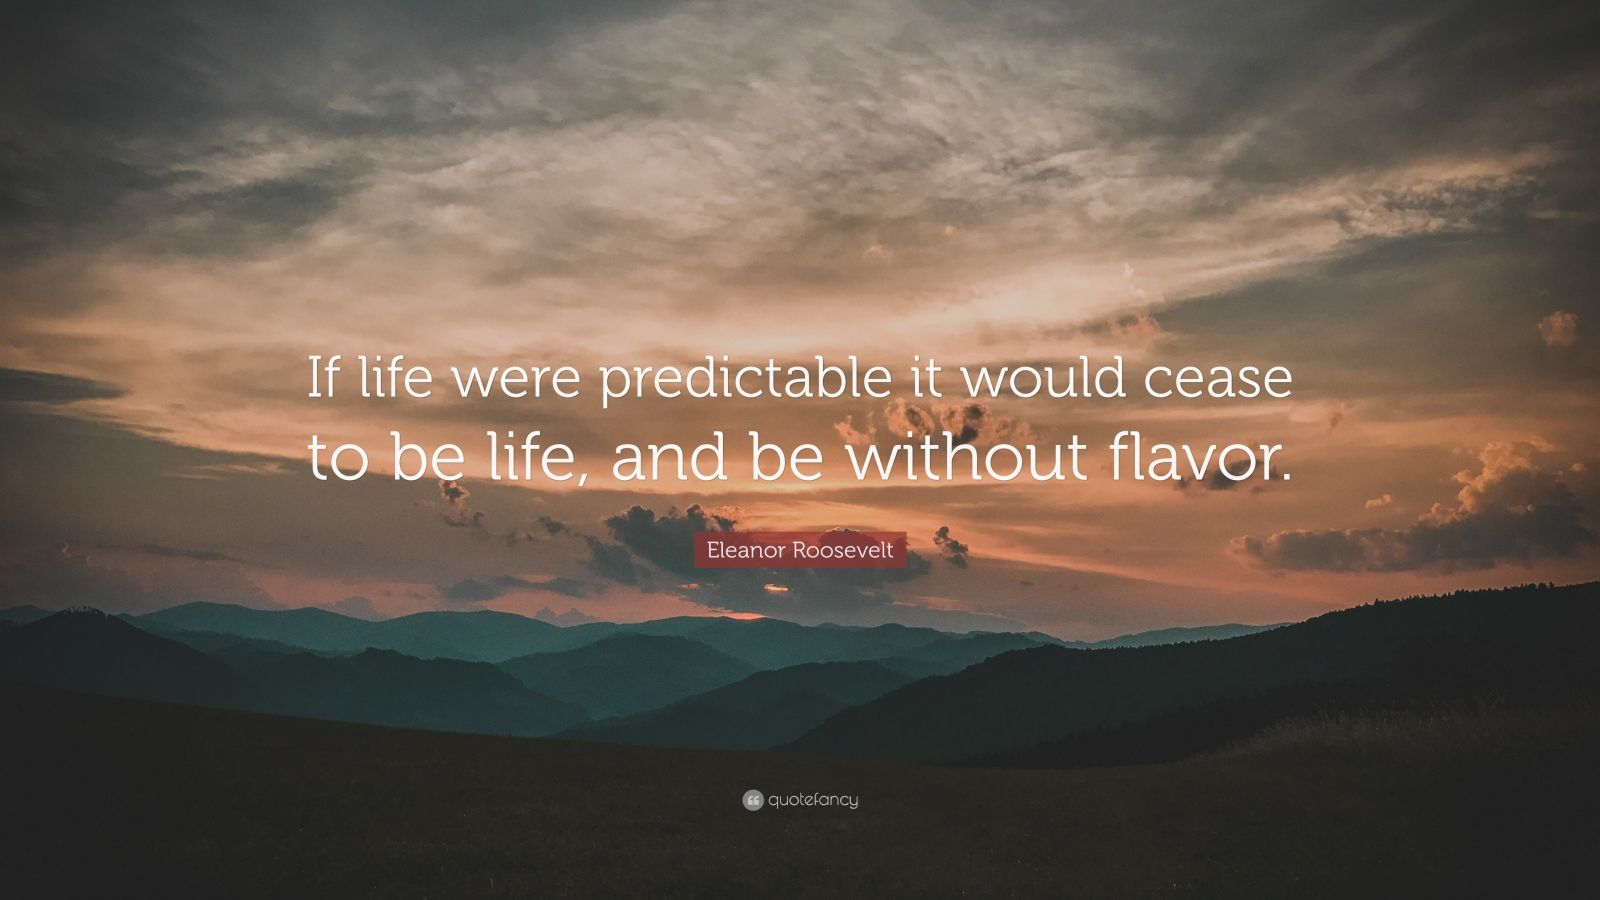 """Eleanor Roosevelt Quote: """"If life were predictable it would cease to be life, and be without flavor."""""""